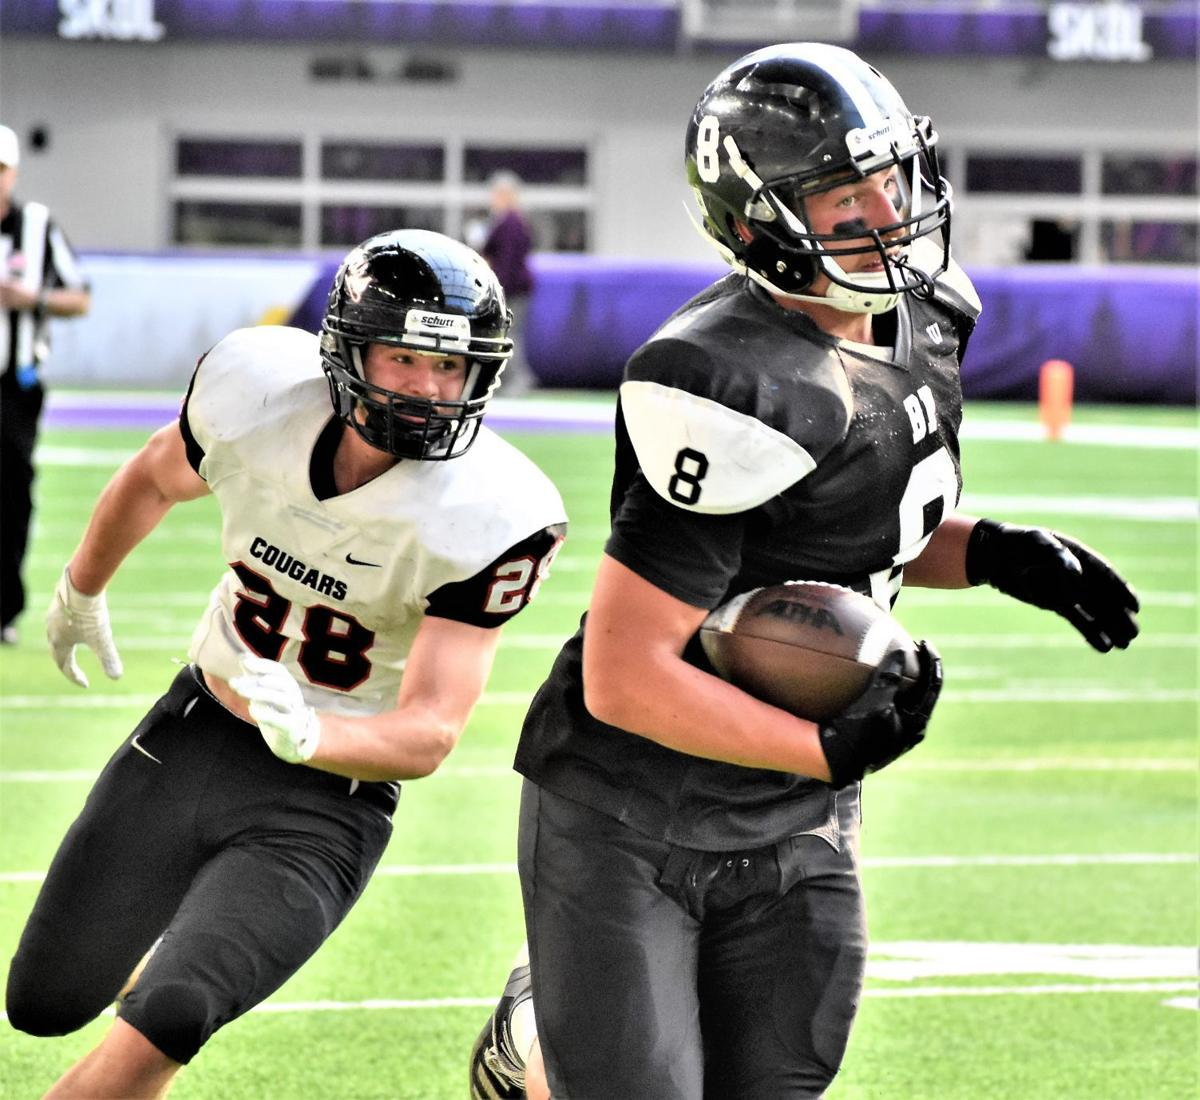 BREAKING THROUGH: Awesome Blossoms clinch first ever berth in Prep Bowl with impressive 41-0 shutout of Ada-Borup